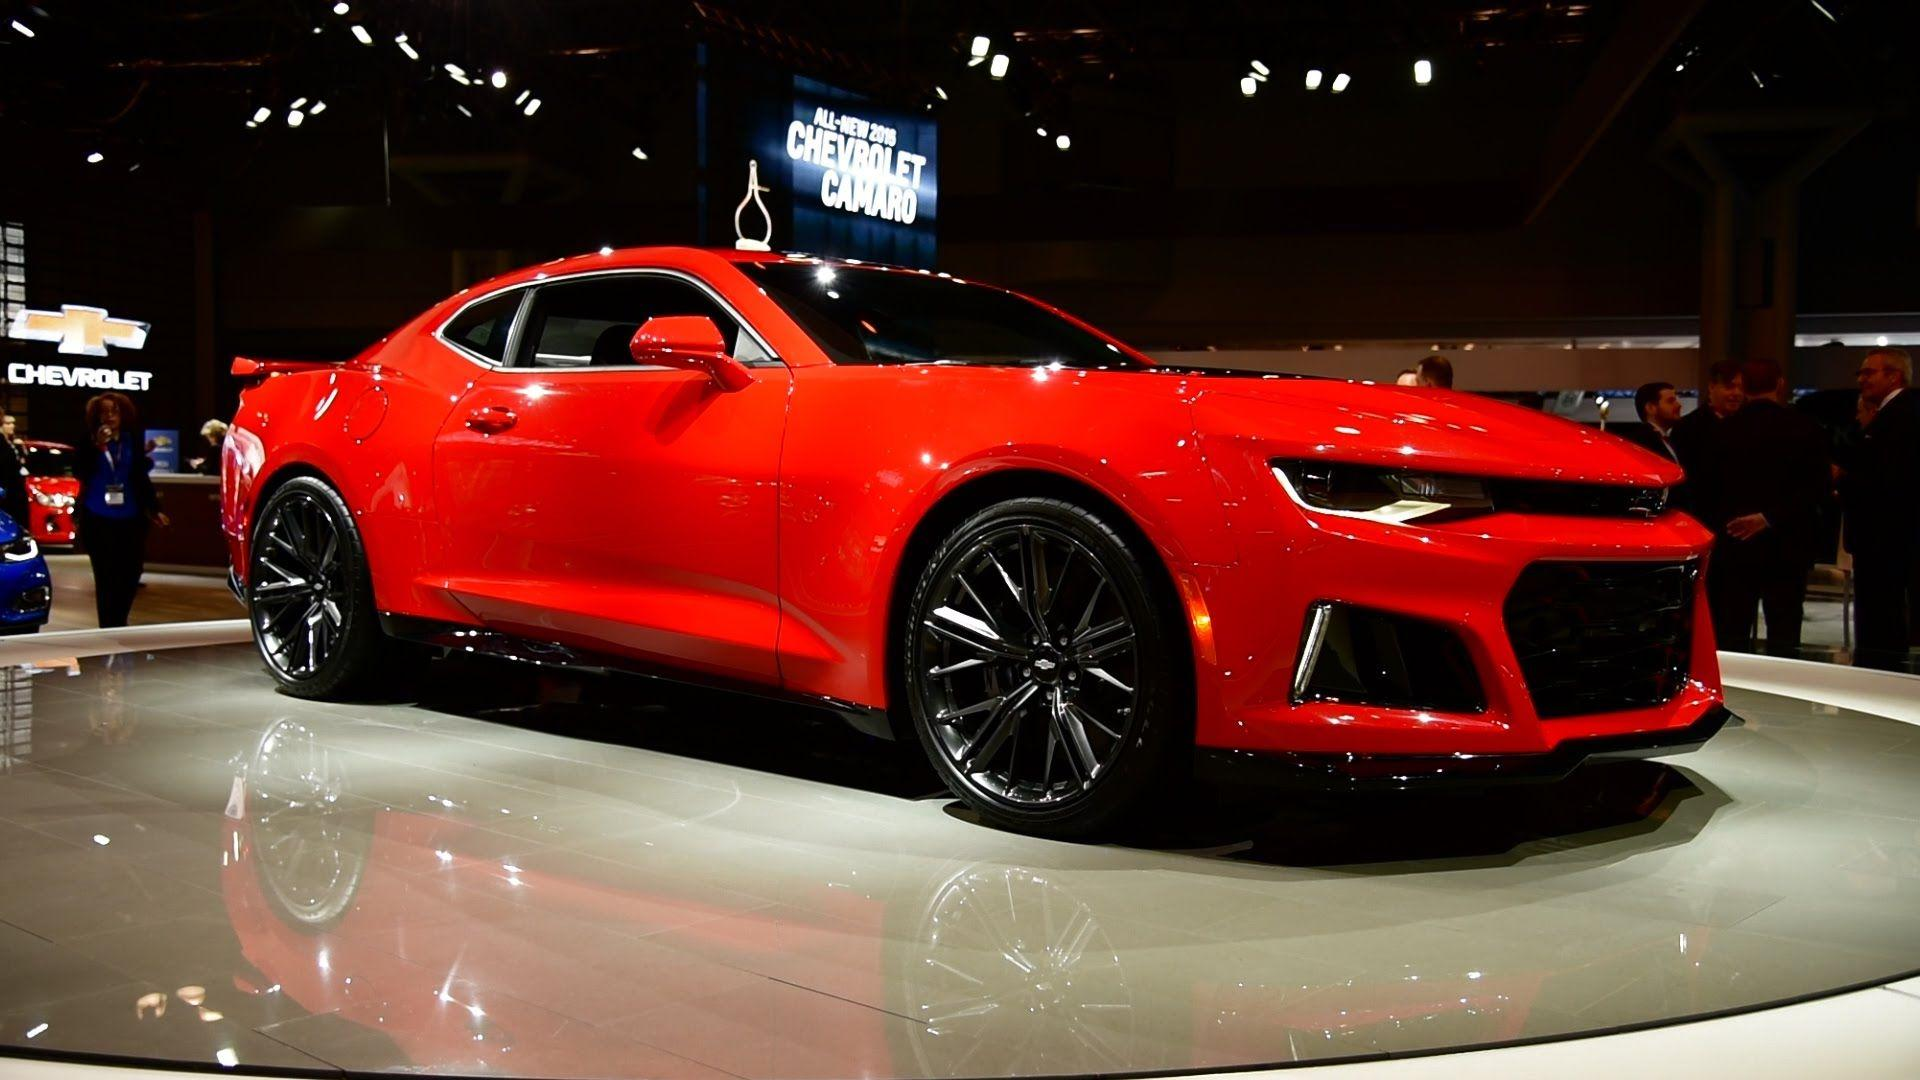 2017 Camaro ZL1 at New York Auto Show